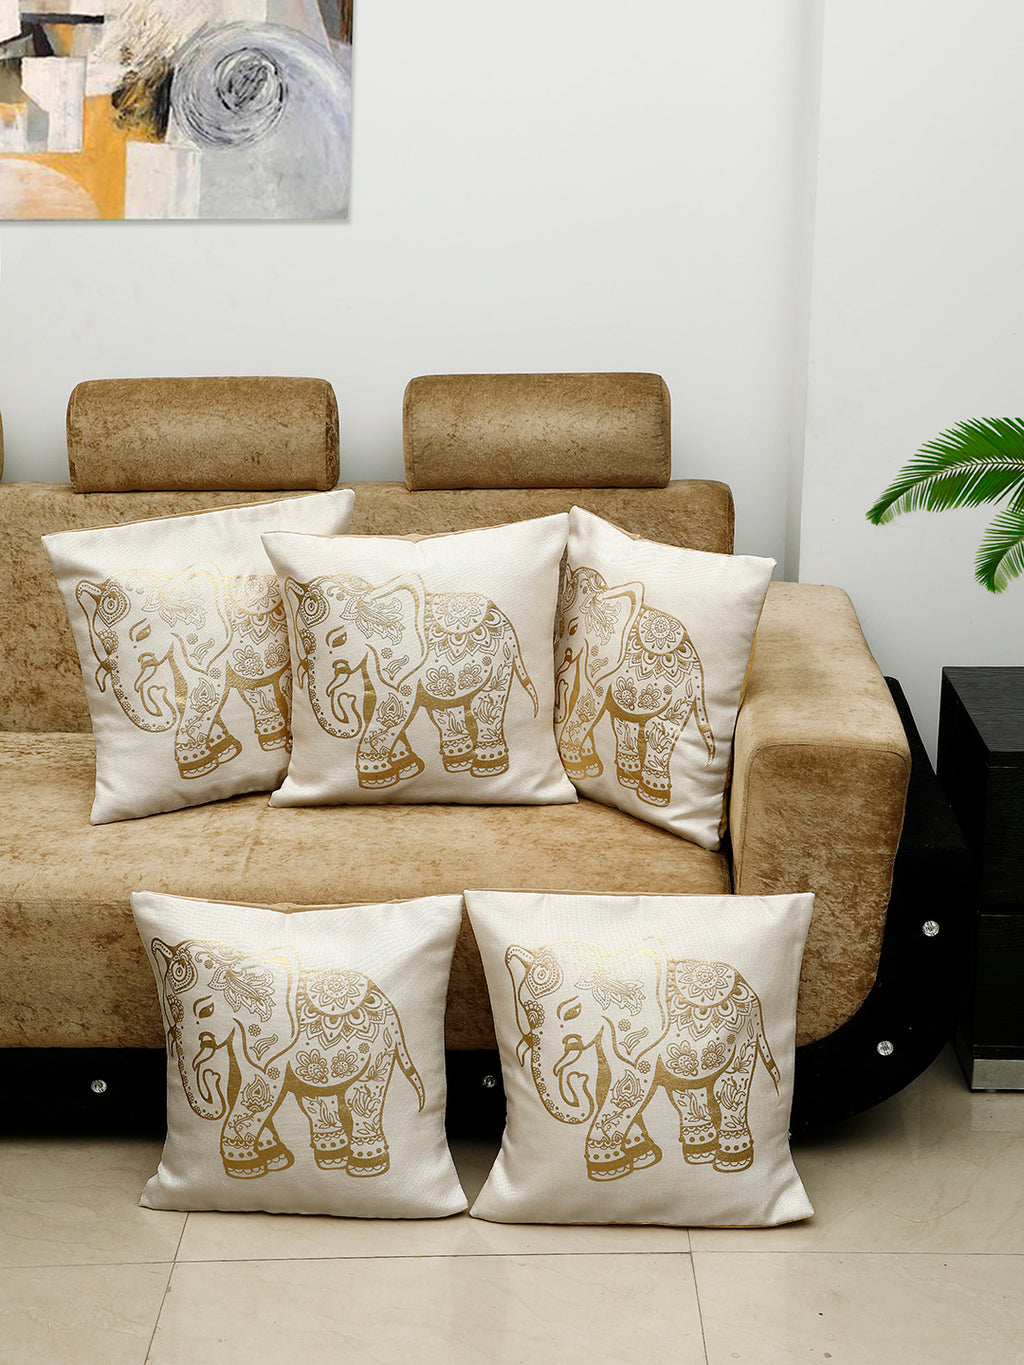 Detec™ Hosta Beige Golden Elephant Printed 16 x 16 inches Cushion Cover (Set of 5)